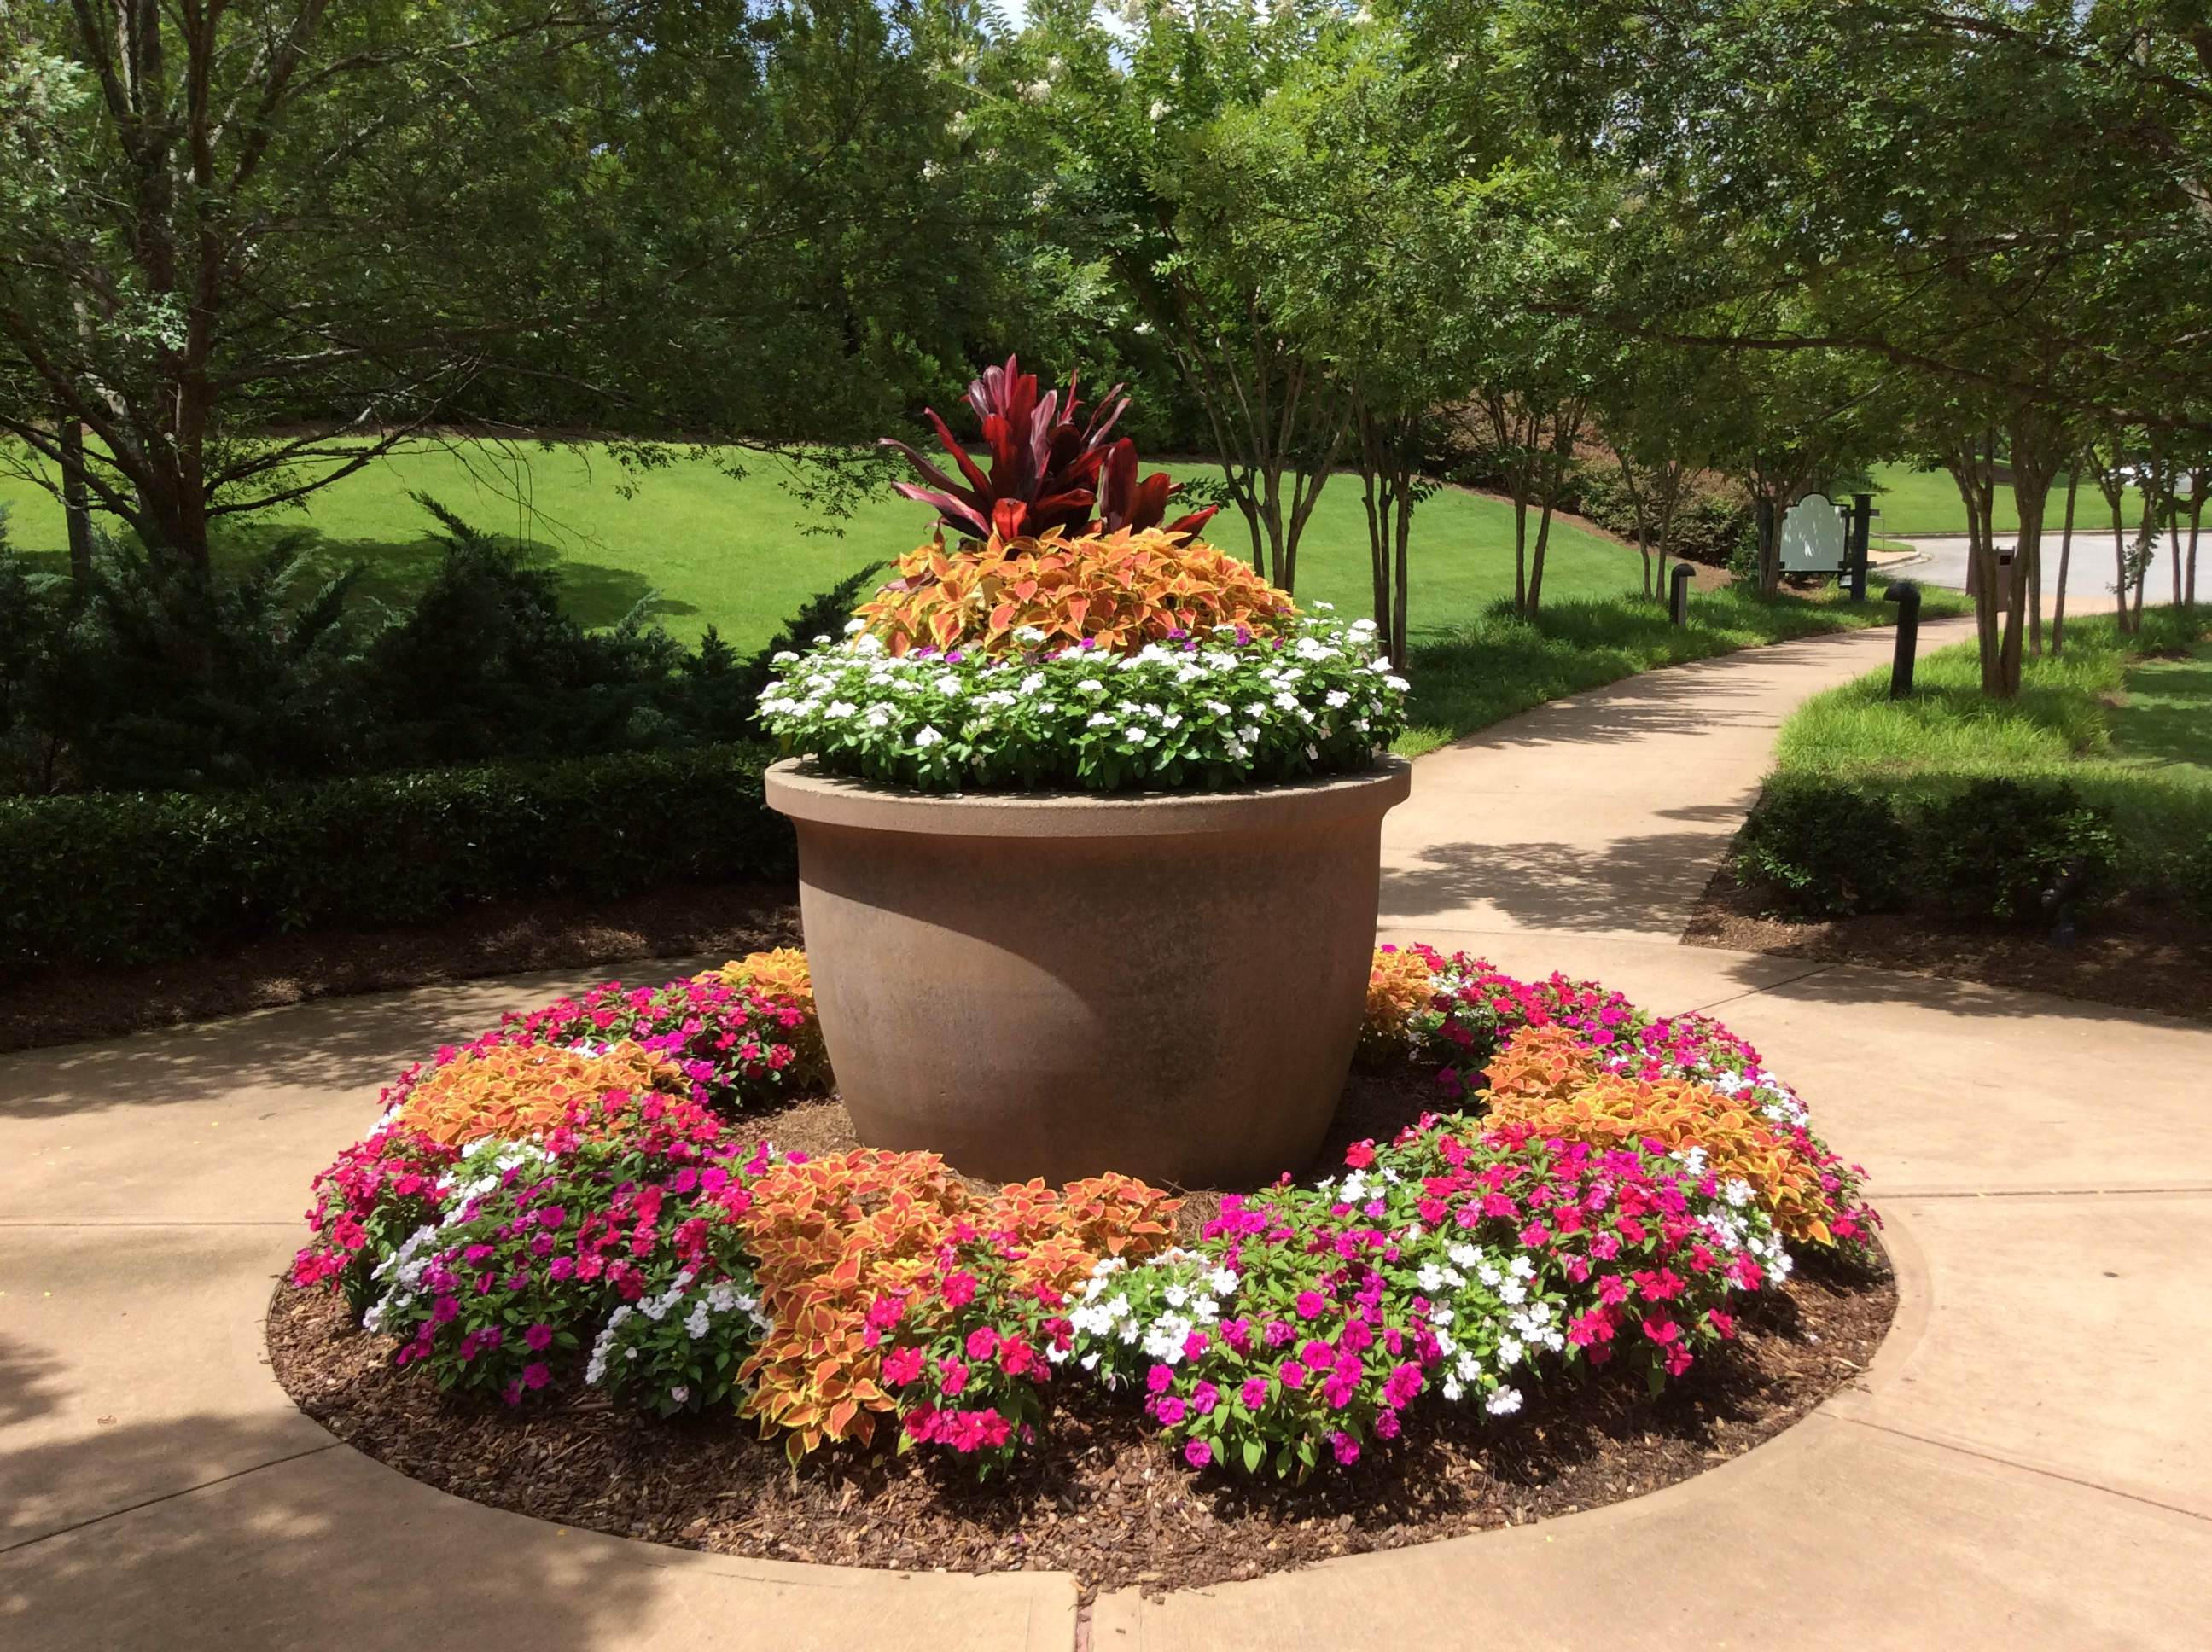 Exterior pot and flowerbed with cordyline